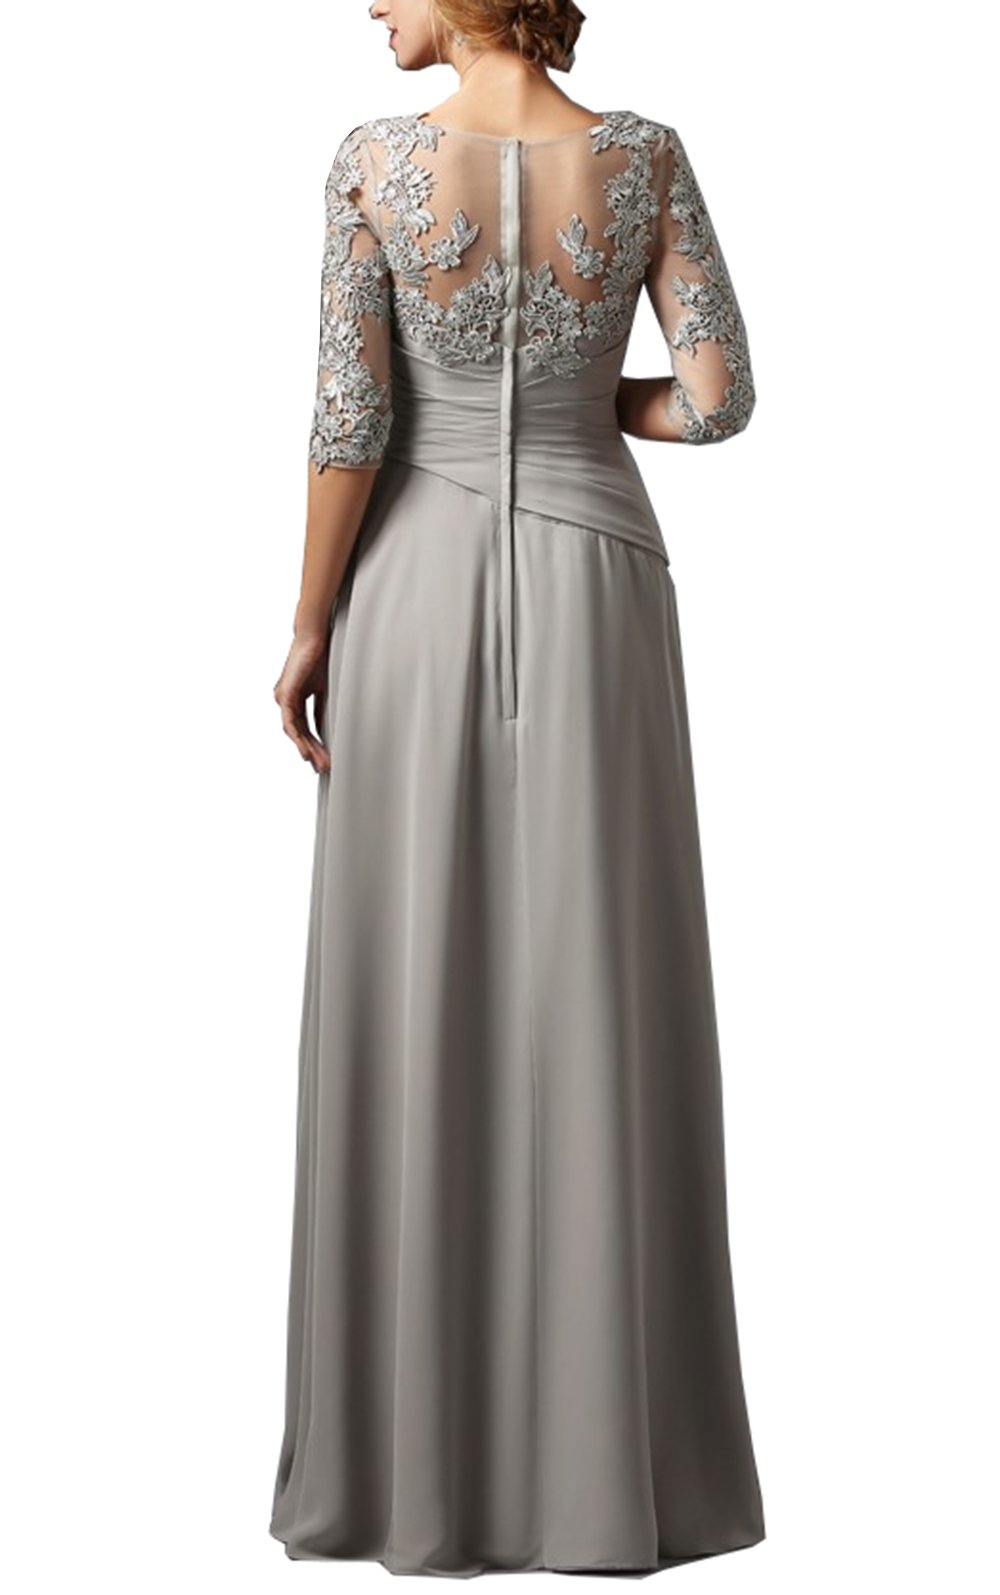 c5eab79e906 ... 3 4 Sleeves Chiffon Lace Mother of The Bride Dress Plus Size Elegant Groom  Mother Dresses Wedding(US14